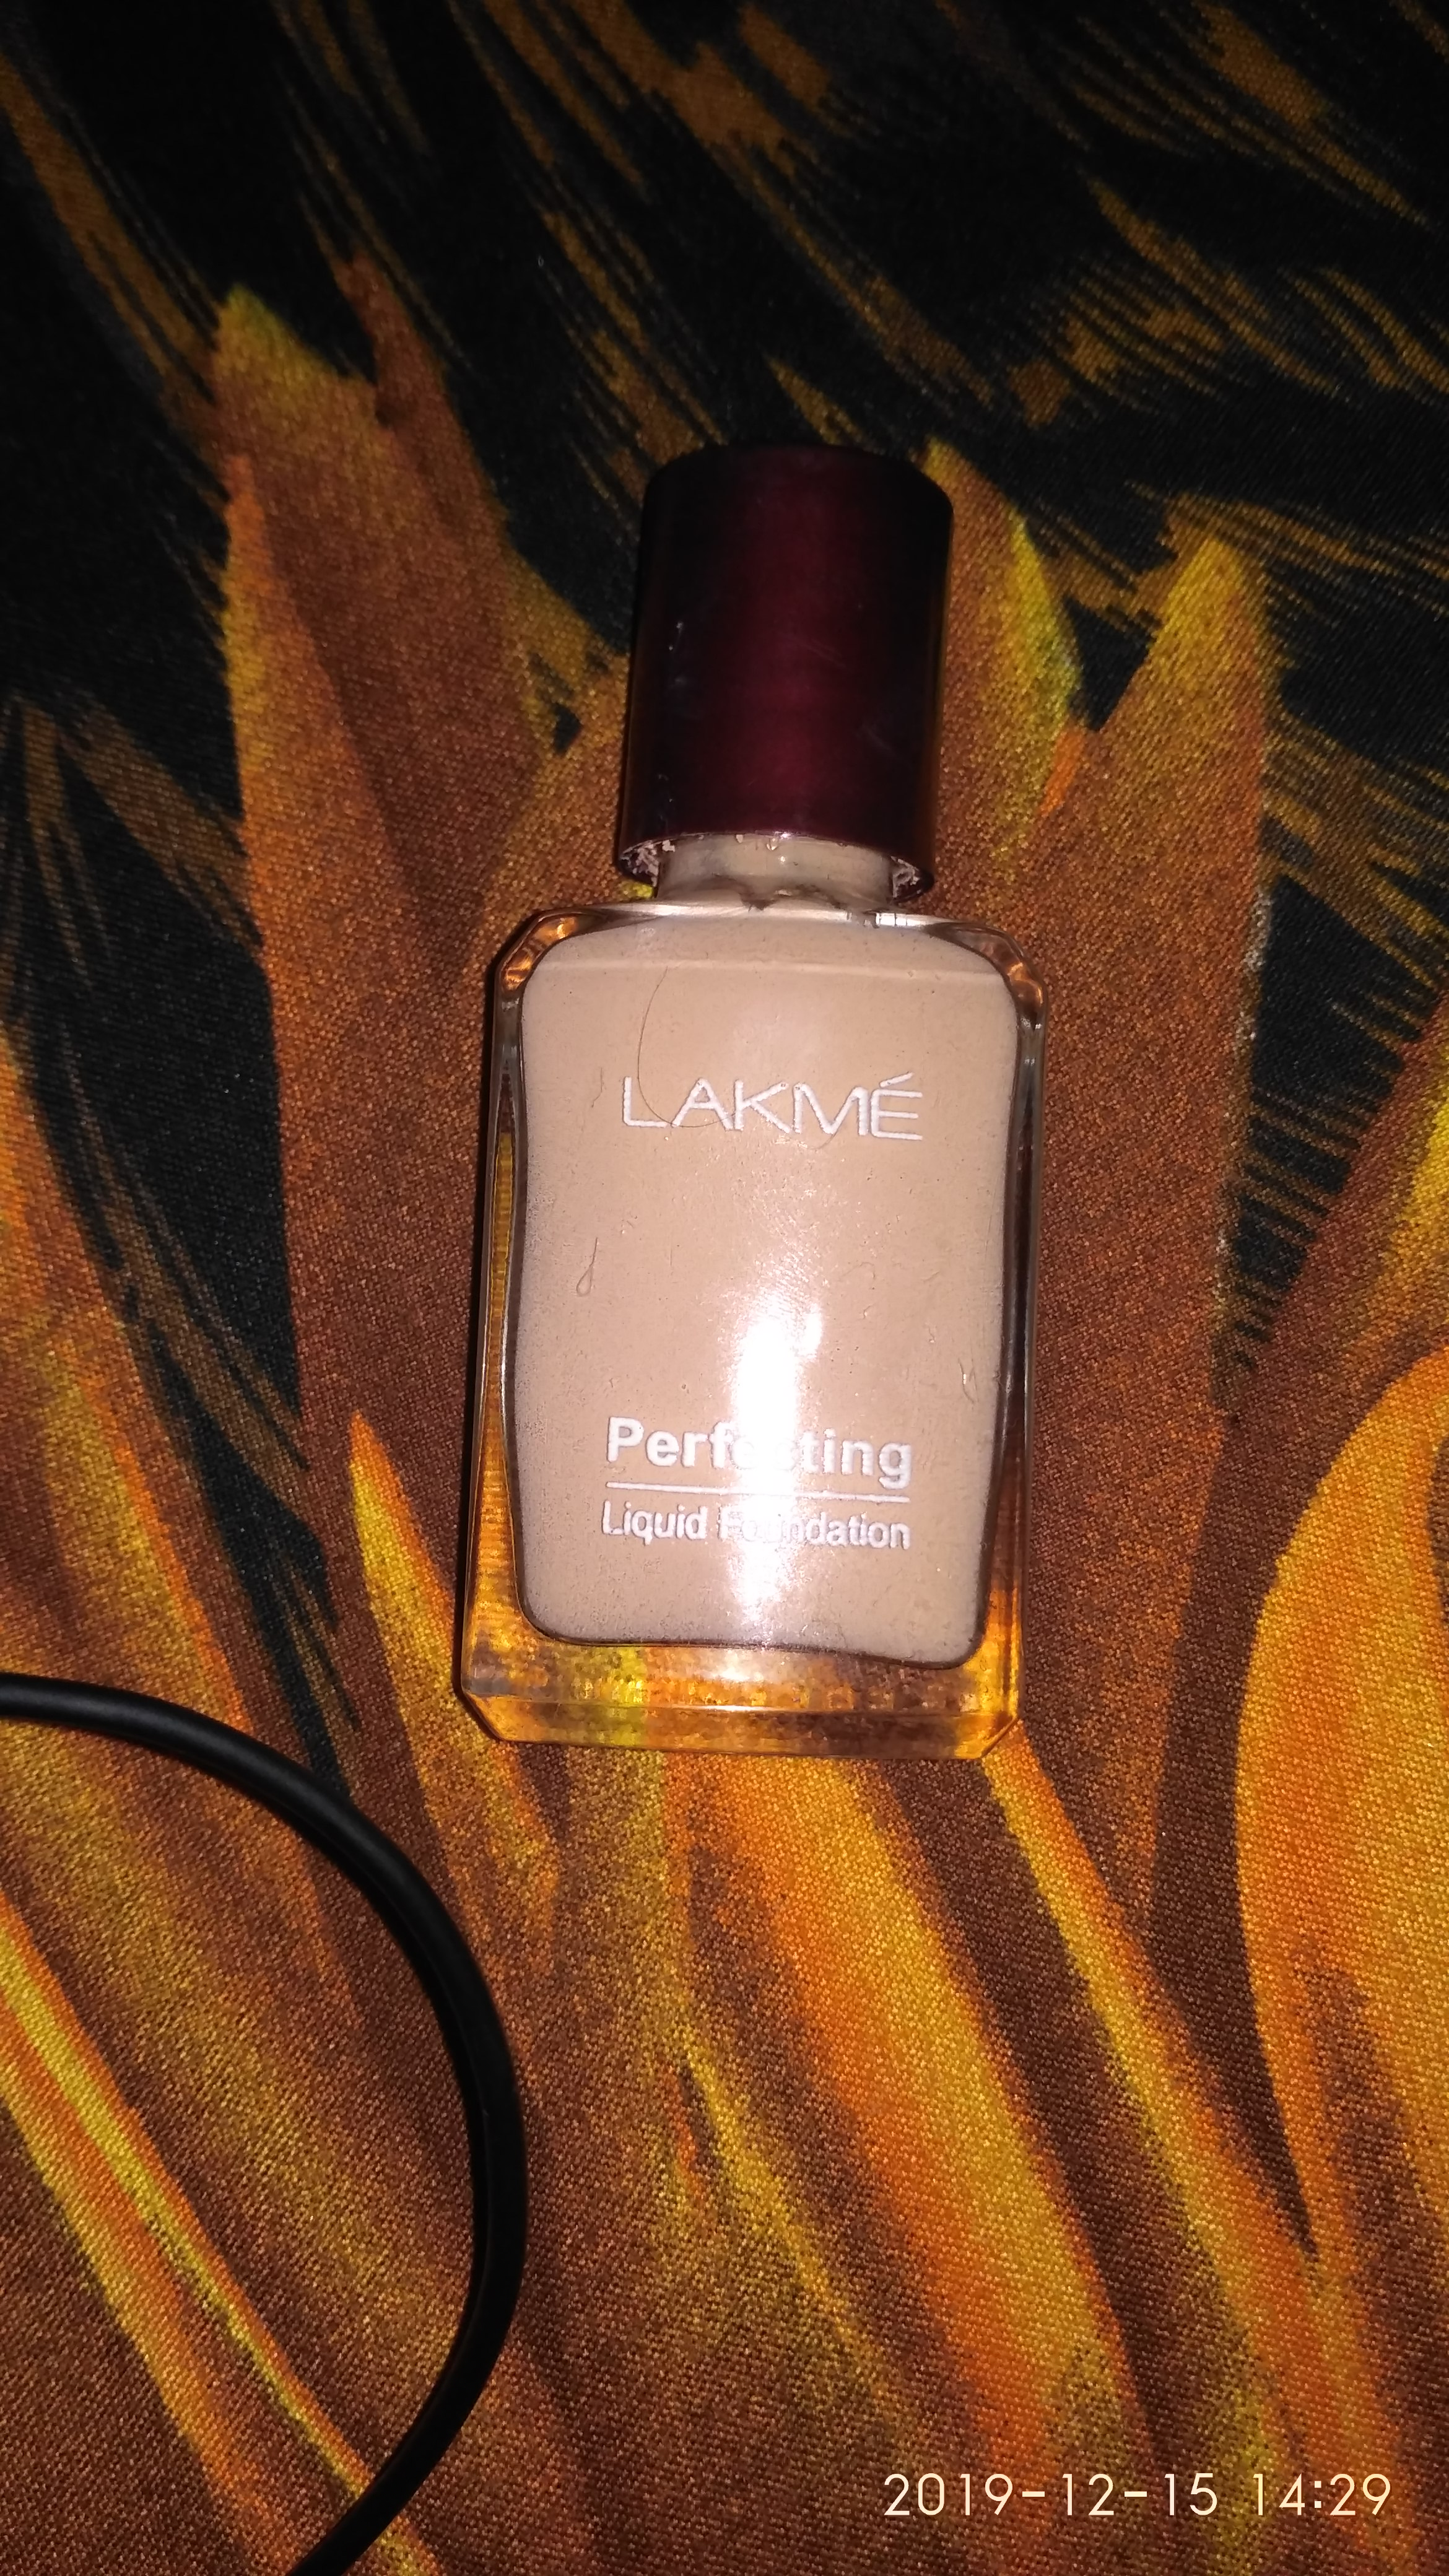 Lakme Perfecting Liquid Foundation -All in one-By ritu26